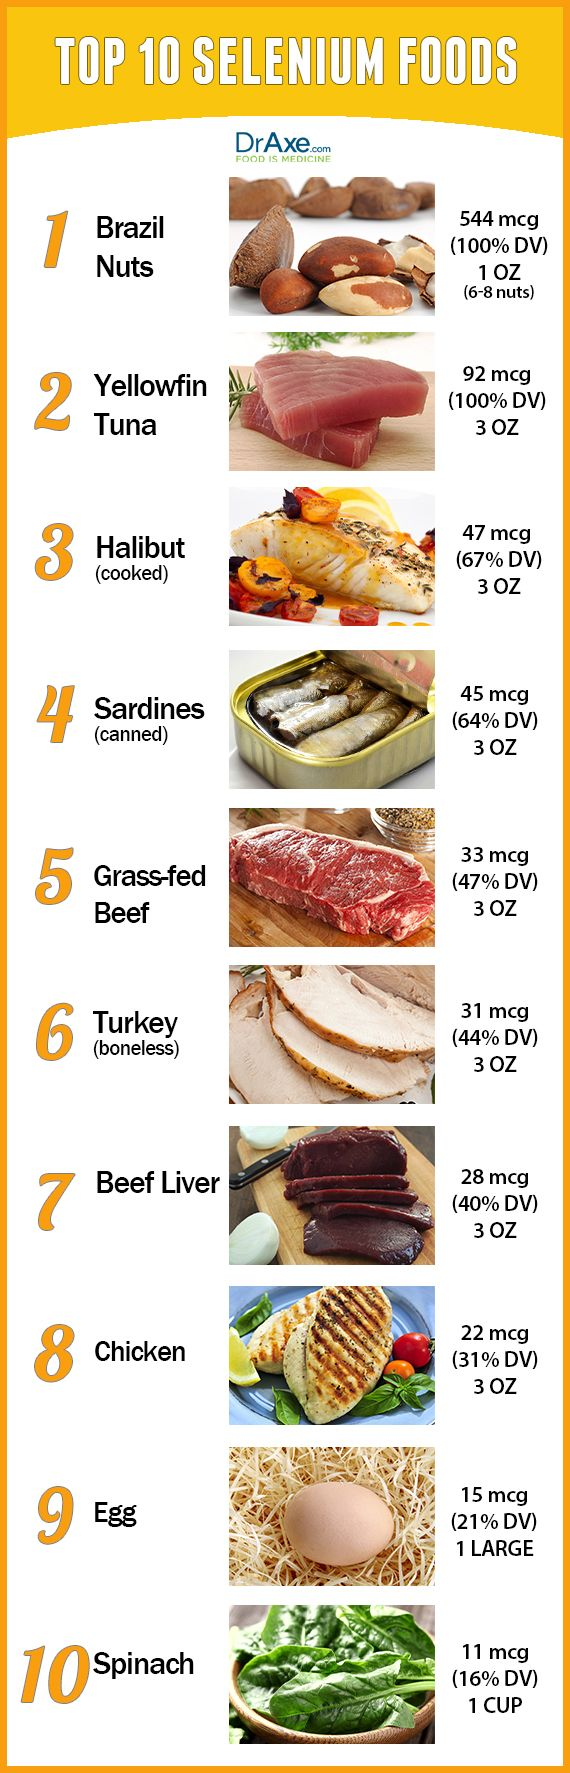 Selenium benefits include healthy skin and hair, prostate health, thyroid health and cancer prevention. Try these Top 10 Foods High in Selenium!